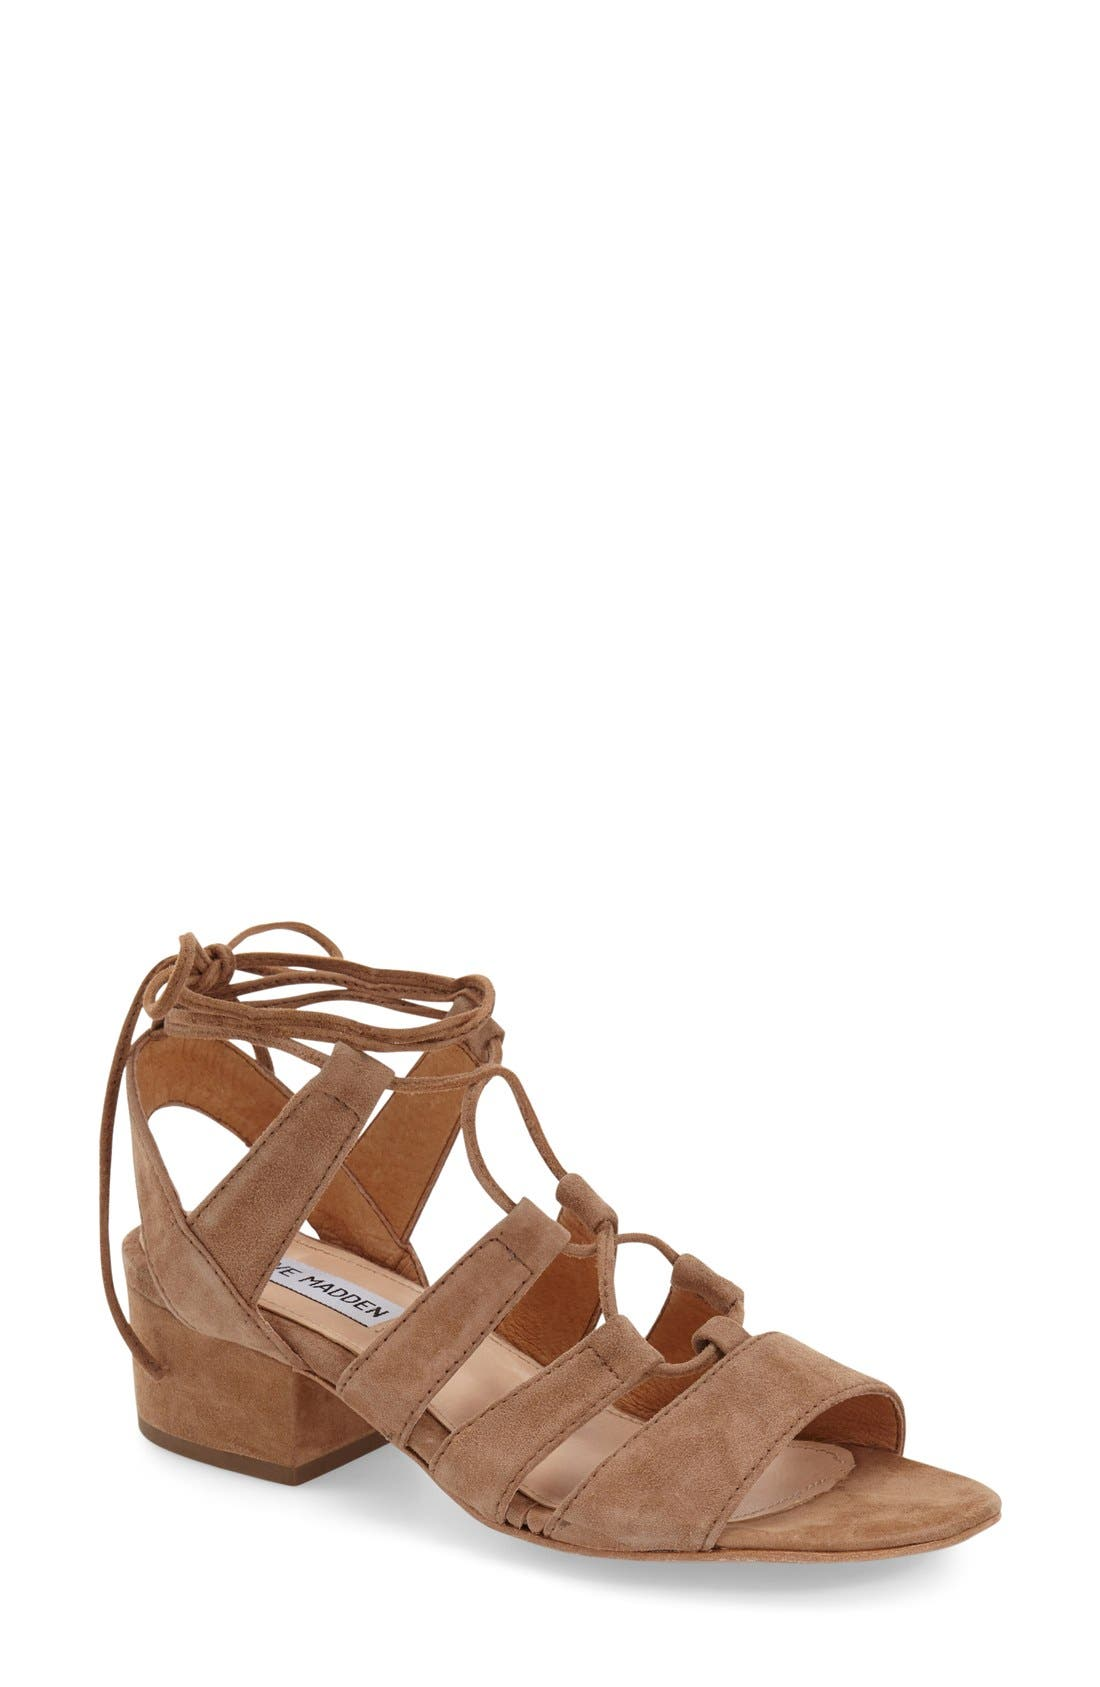 Main Image - Steve Madden 'Kitty' Ghillie Sandal (Women)